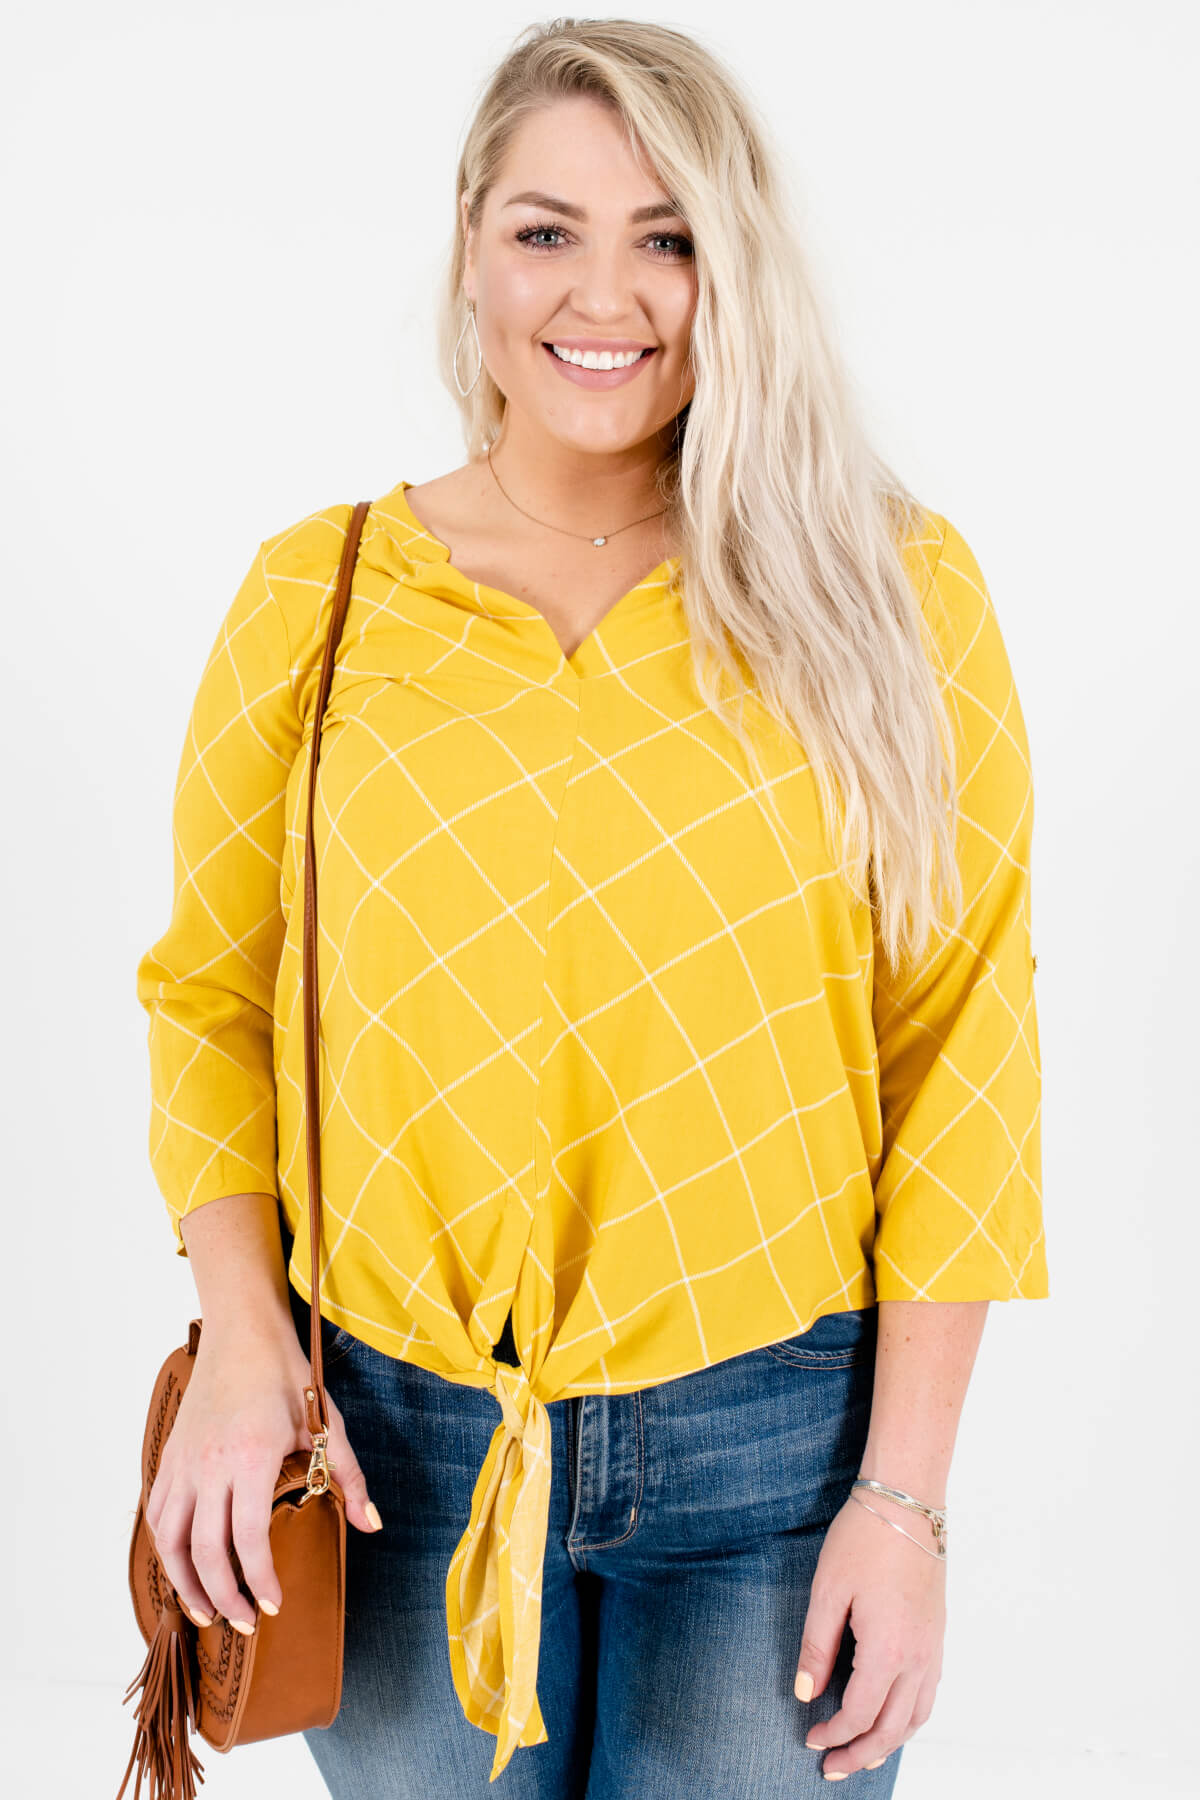 Yellow and White Grid Patterned Plus Size Boutique Blouses for Women